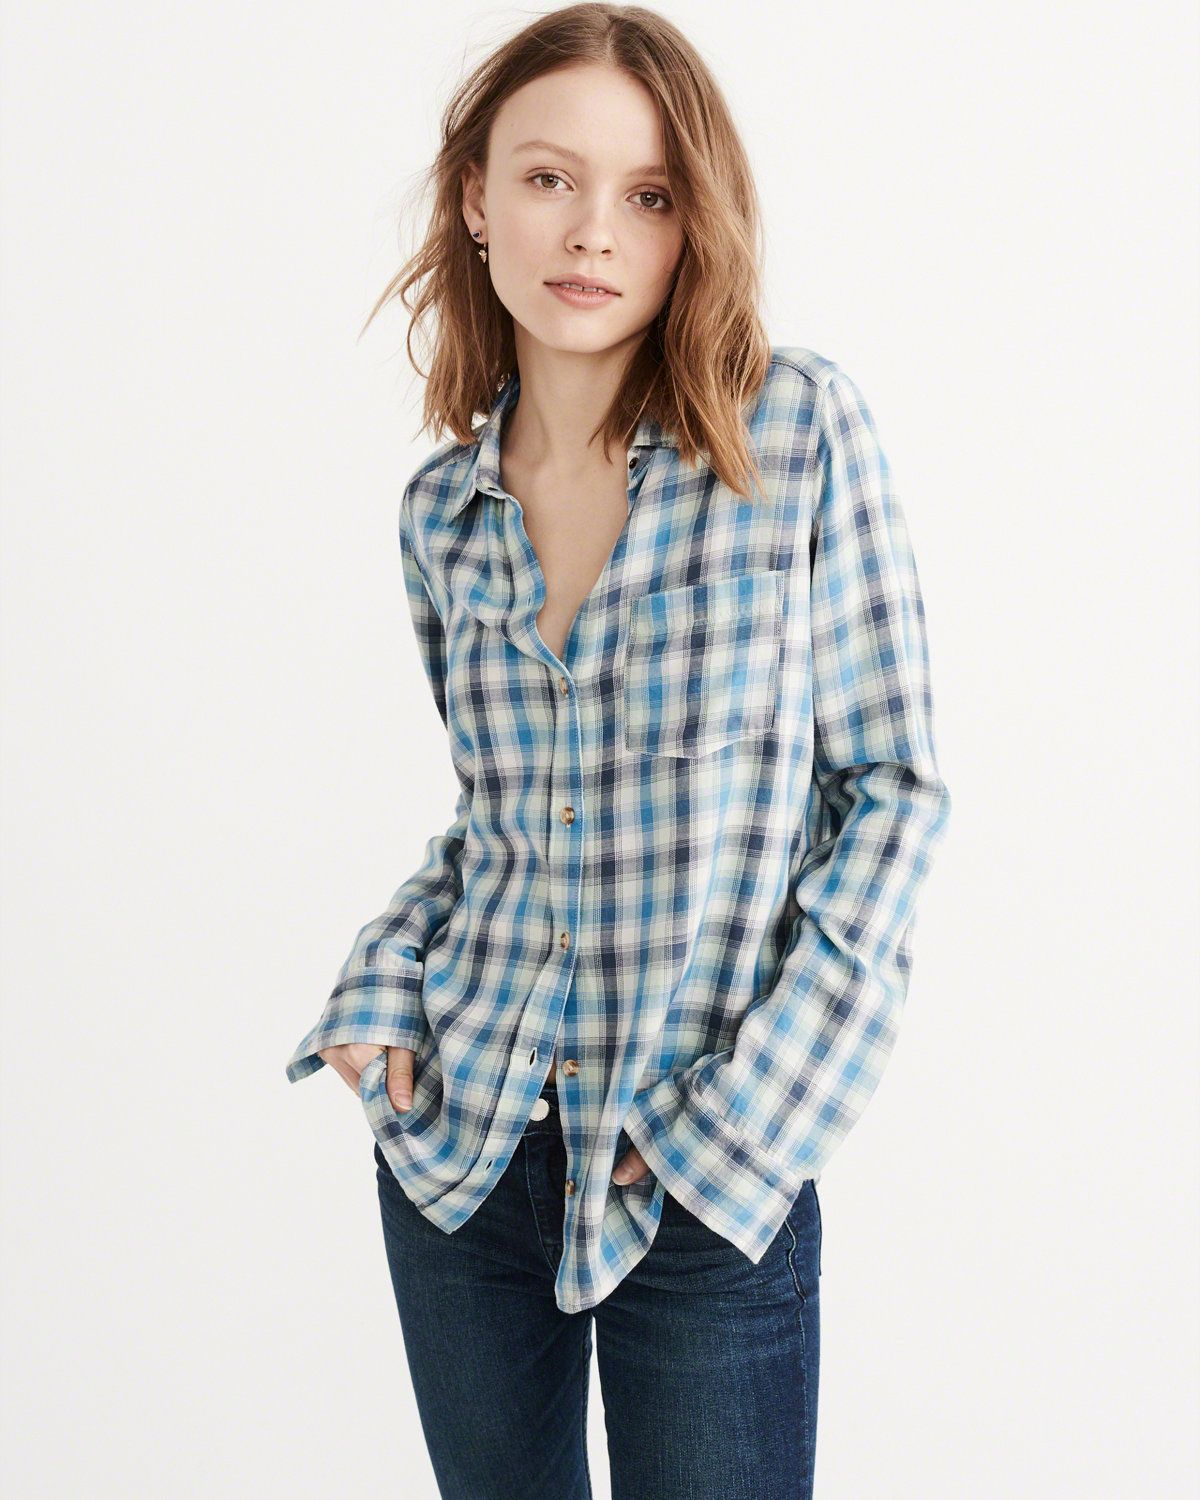 Abercrombie Fitch Accessories Abercrombie Fitch Womens: Womens Shirts & Blouses